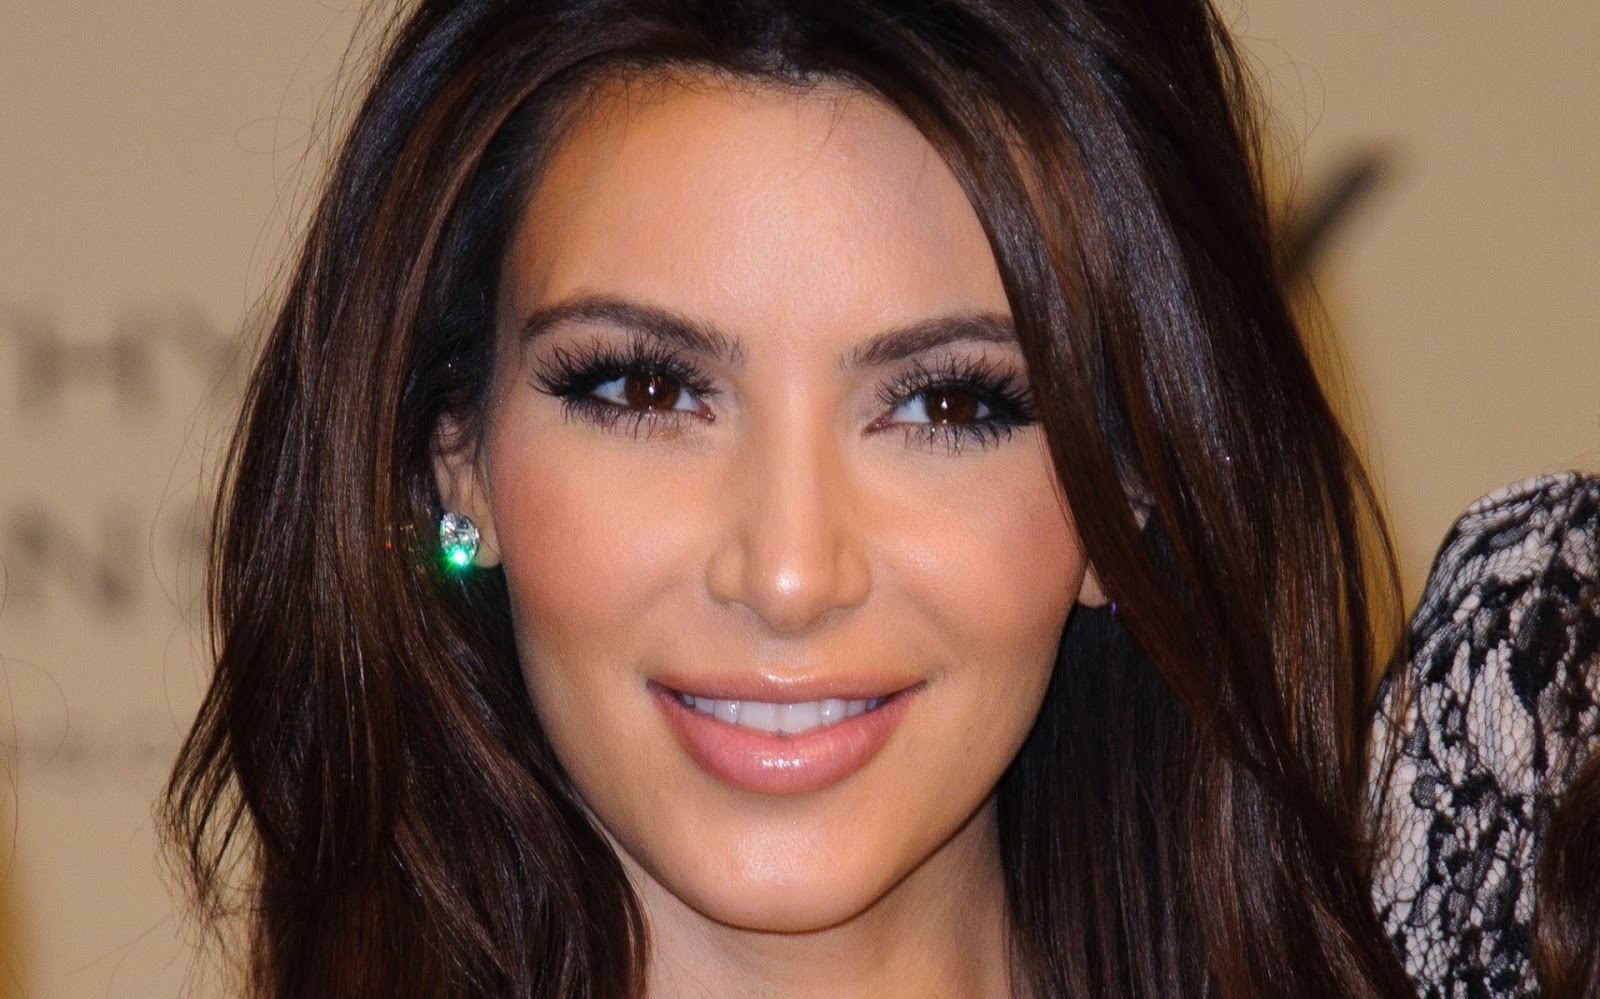 Kim-Kardashian-hot-wallpaper01.jpeg